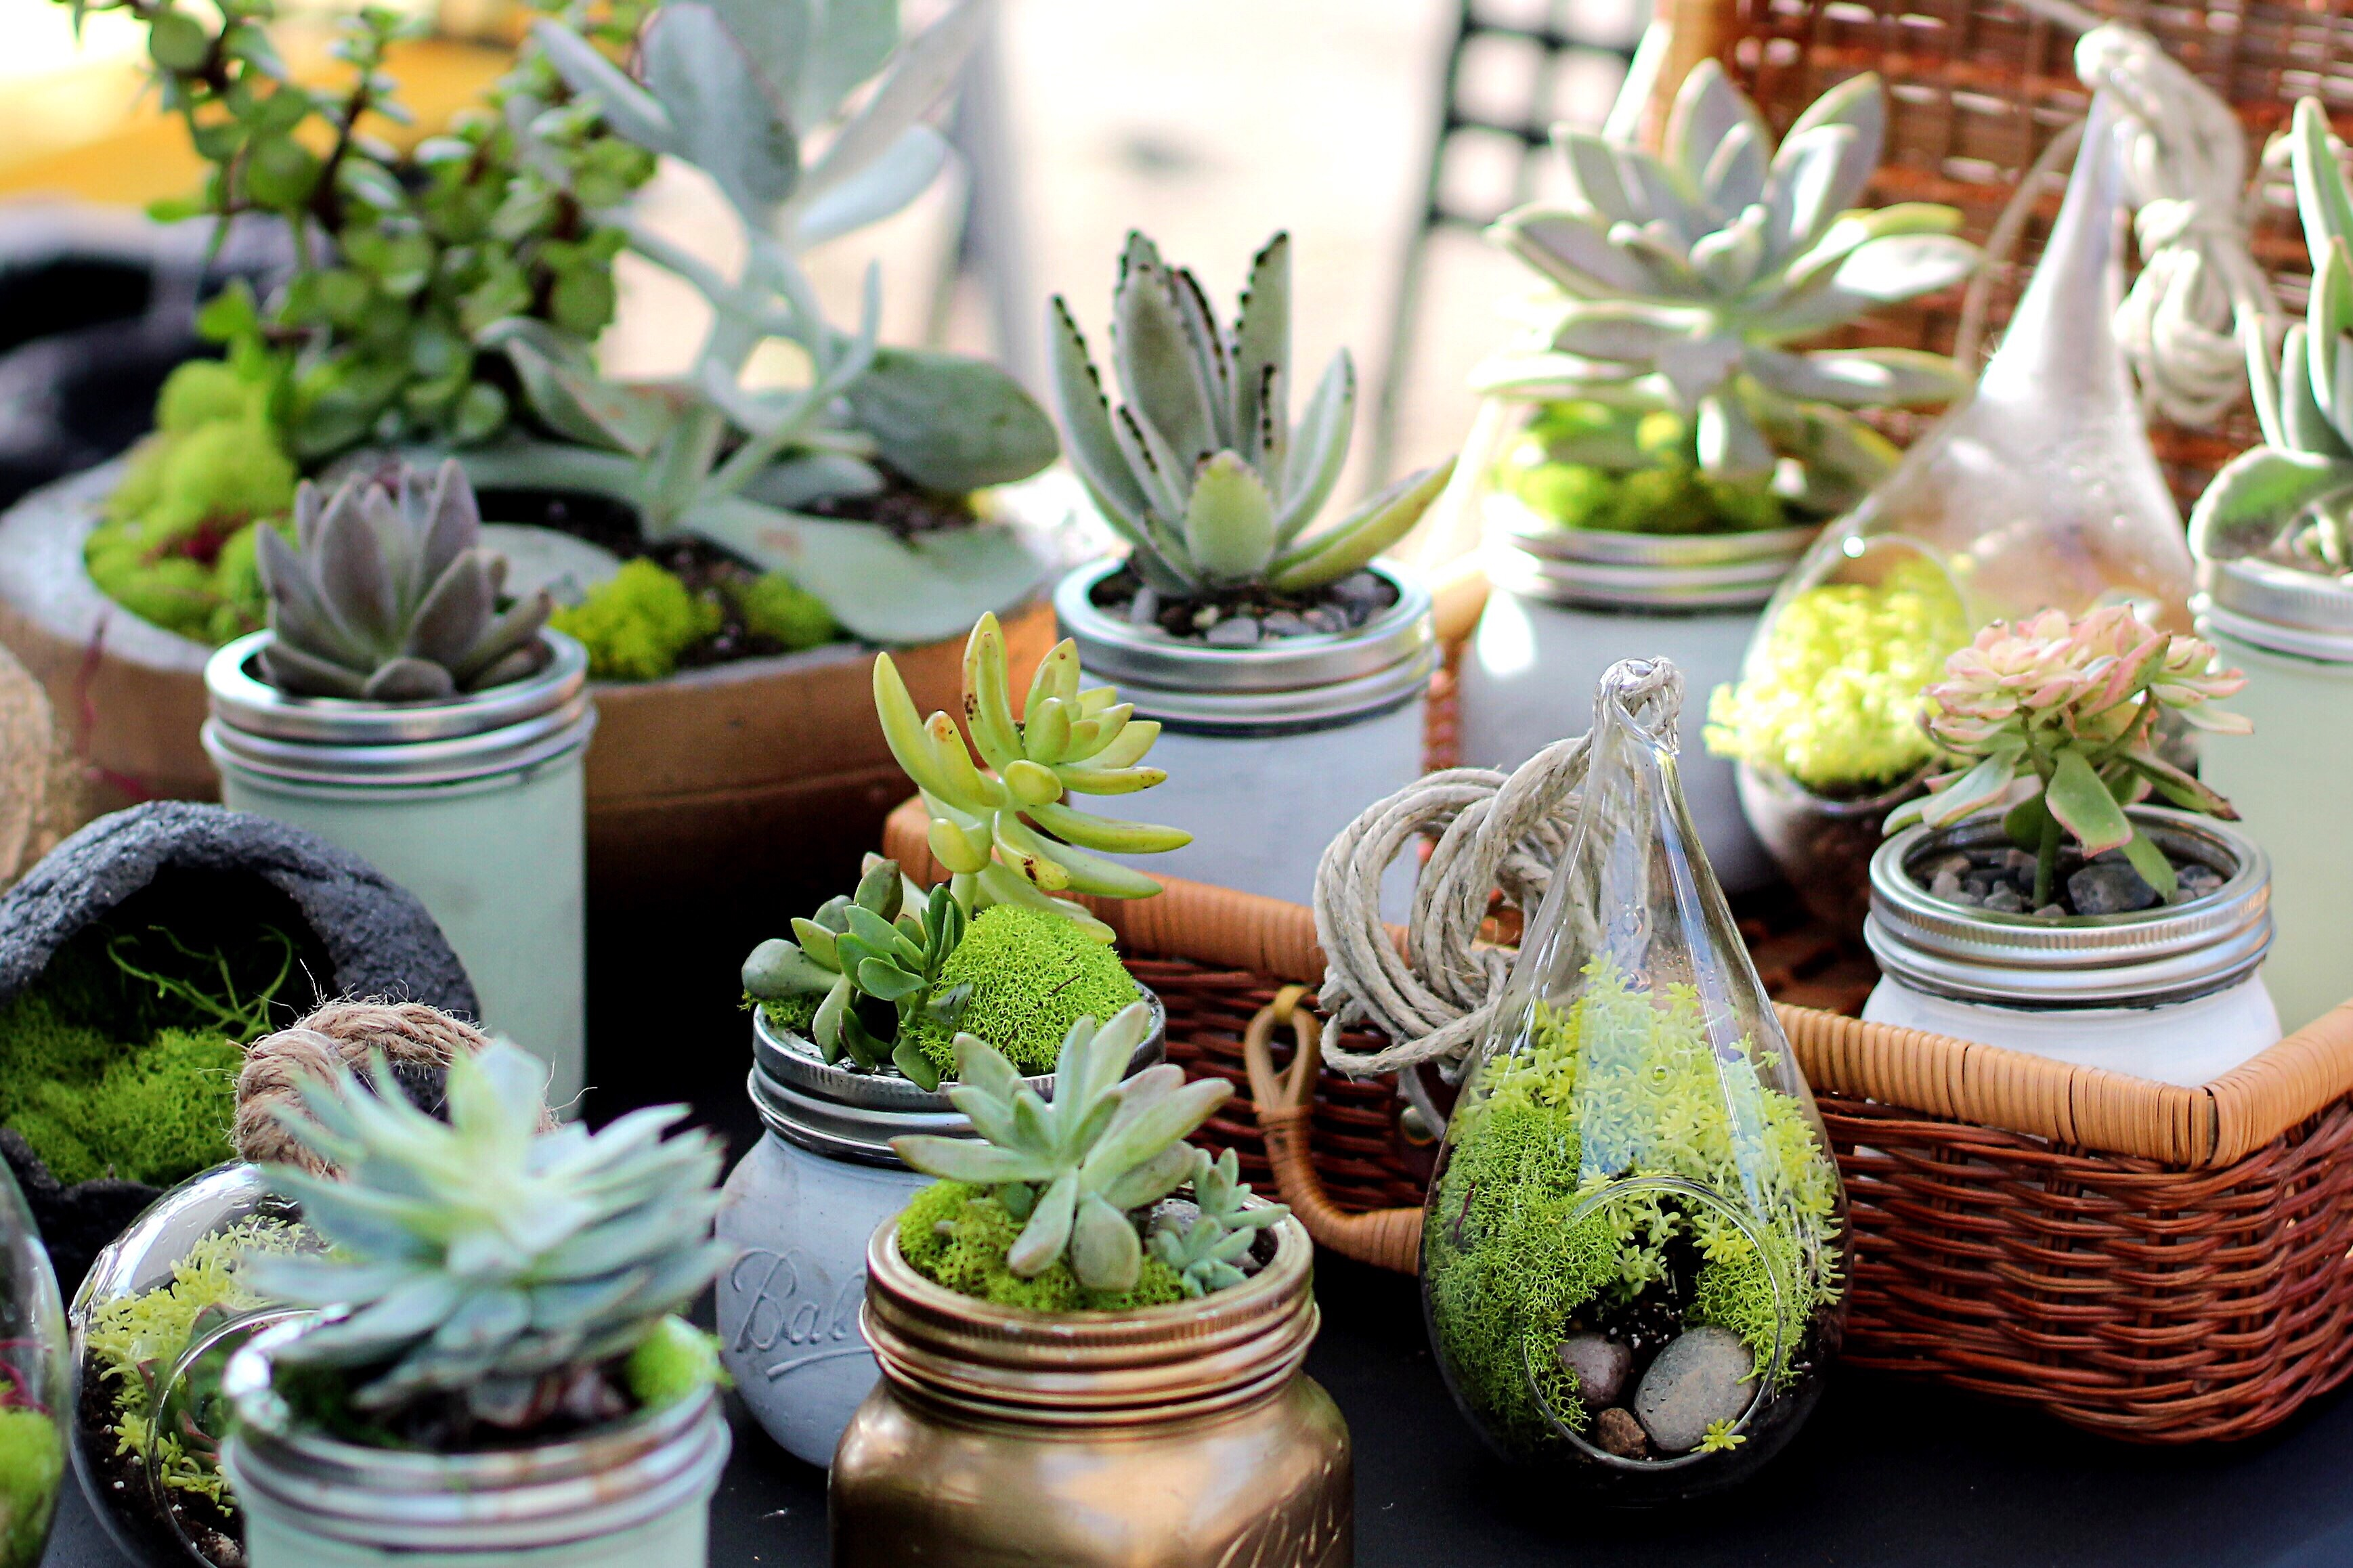 Succulents 101: A Handy Guide for Beginners